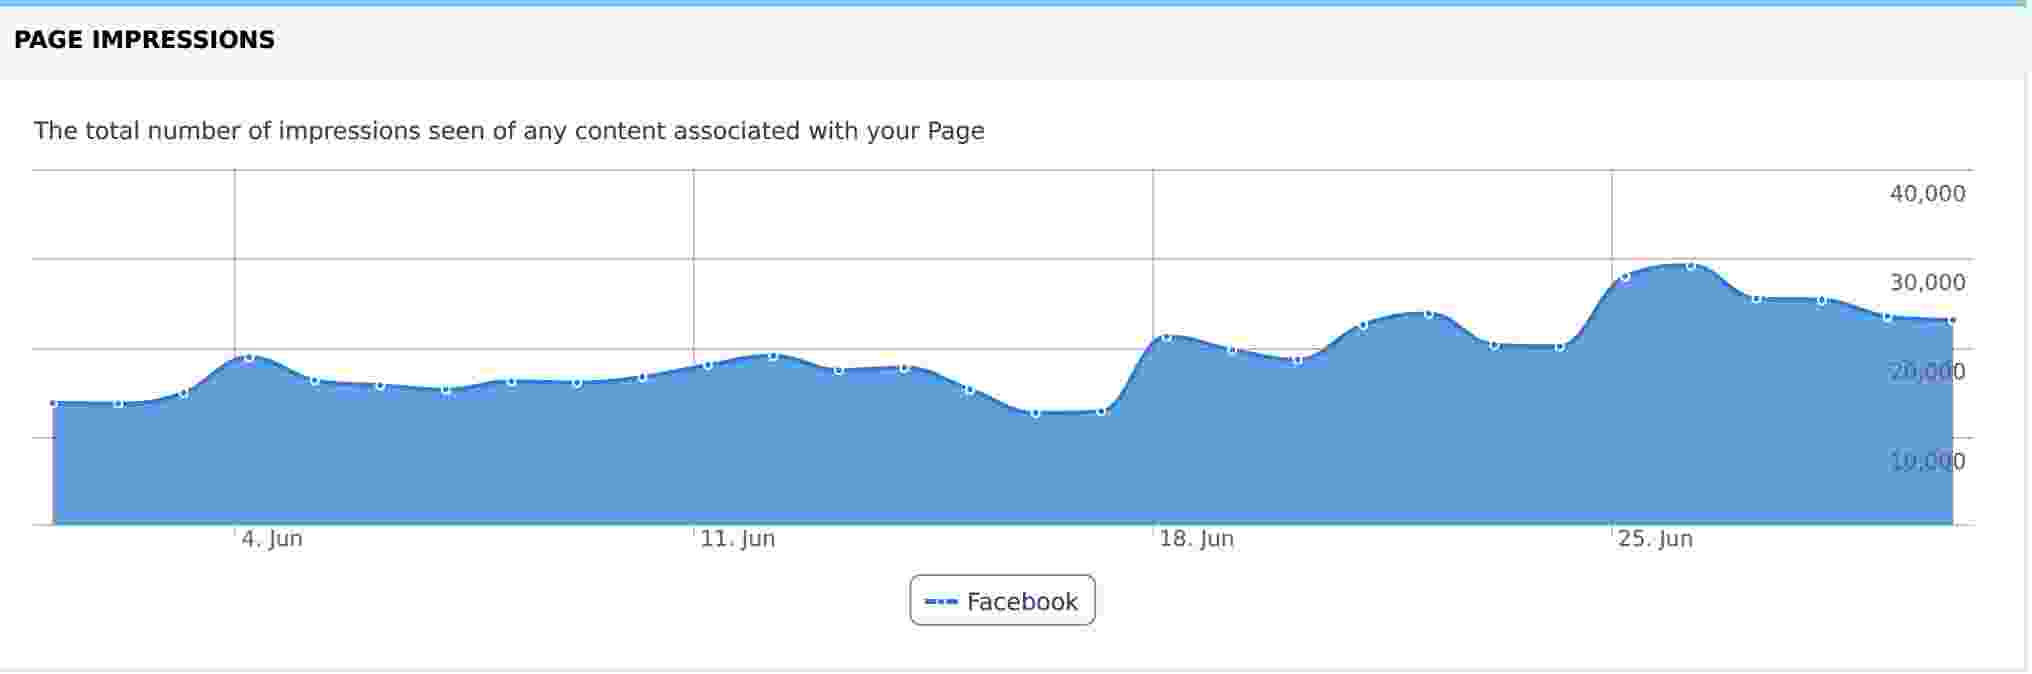 Page Impressions